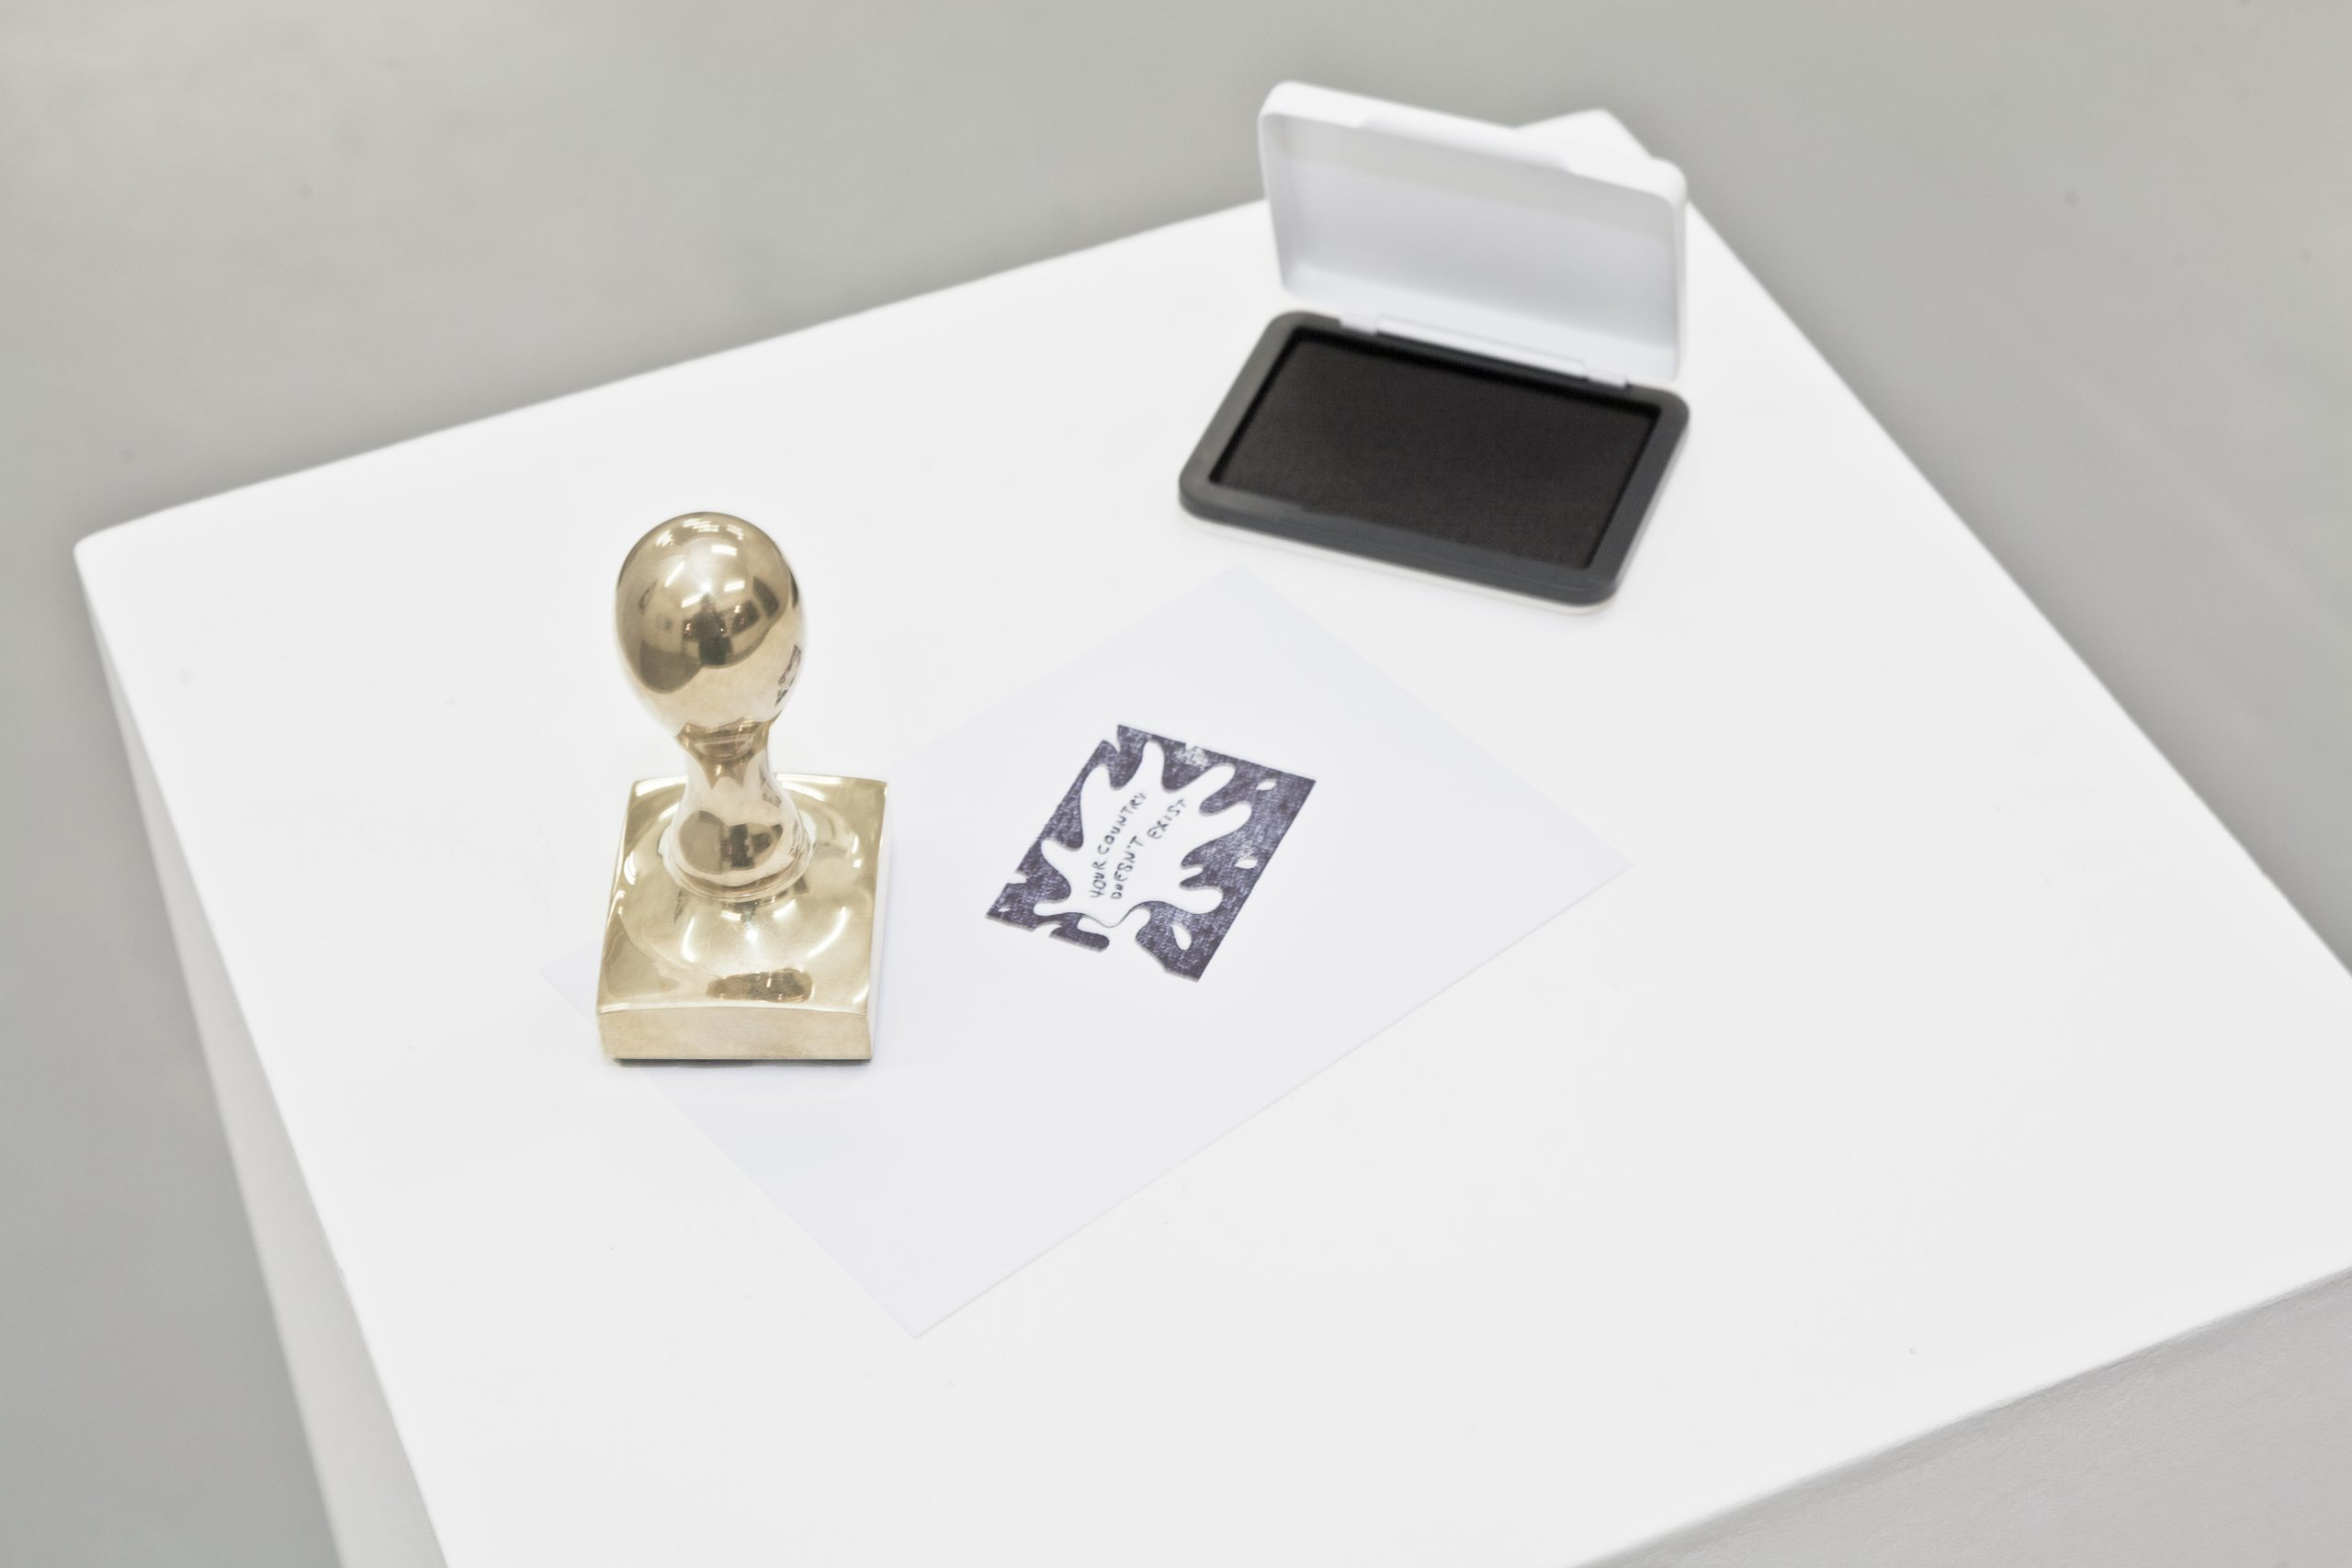 Libia Castro and Ólafur Ólafsson, Your Country Doesn't Exist (copper stamp), 2013